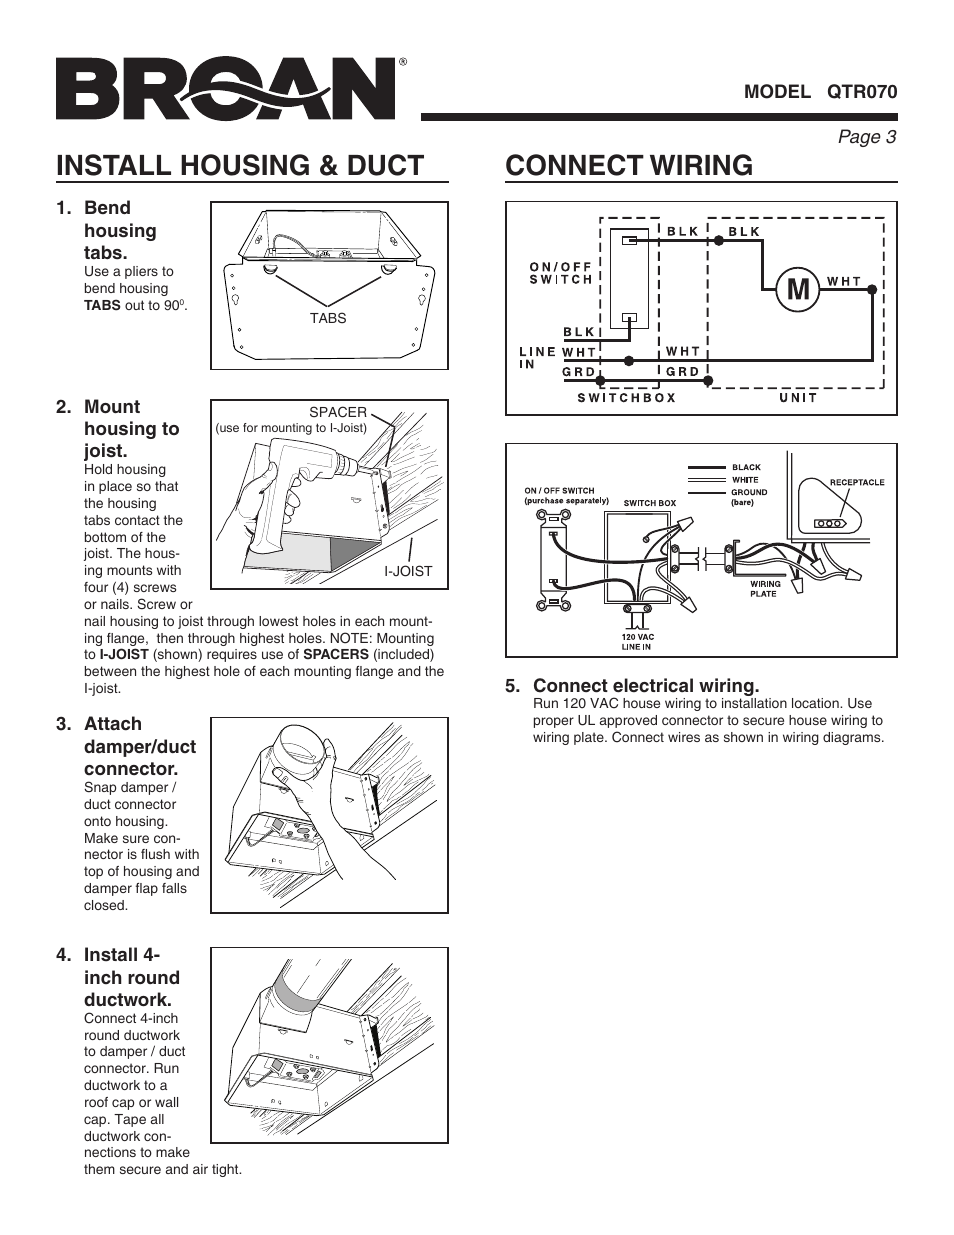 Connect Wiring Install Housing Duct Broan Qtr070 User Manual House Installation Page 3